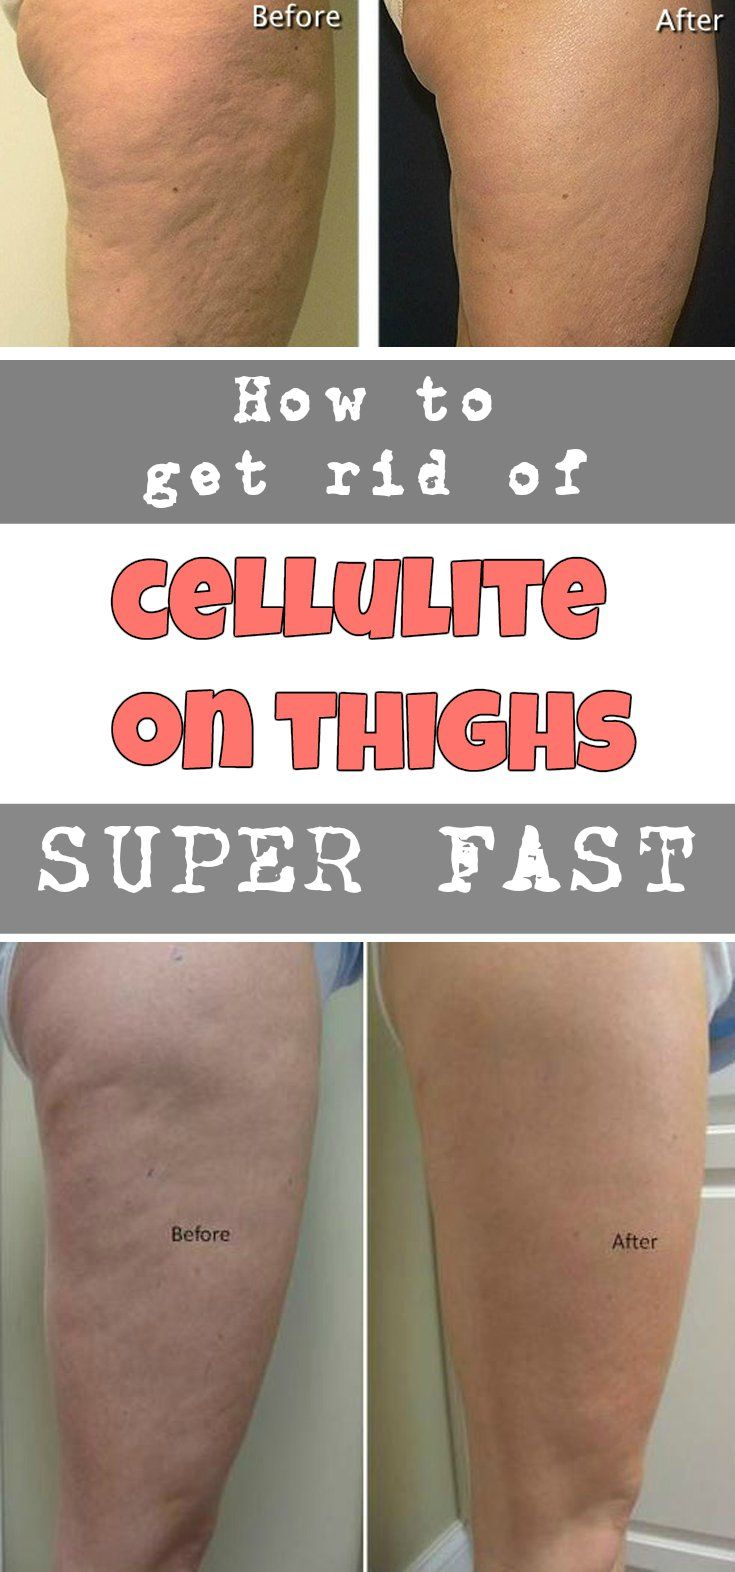 how to get rid of sore thighs overnight